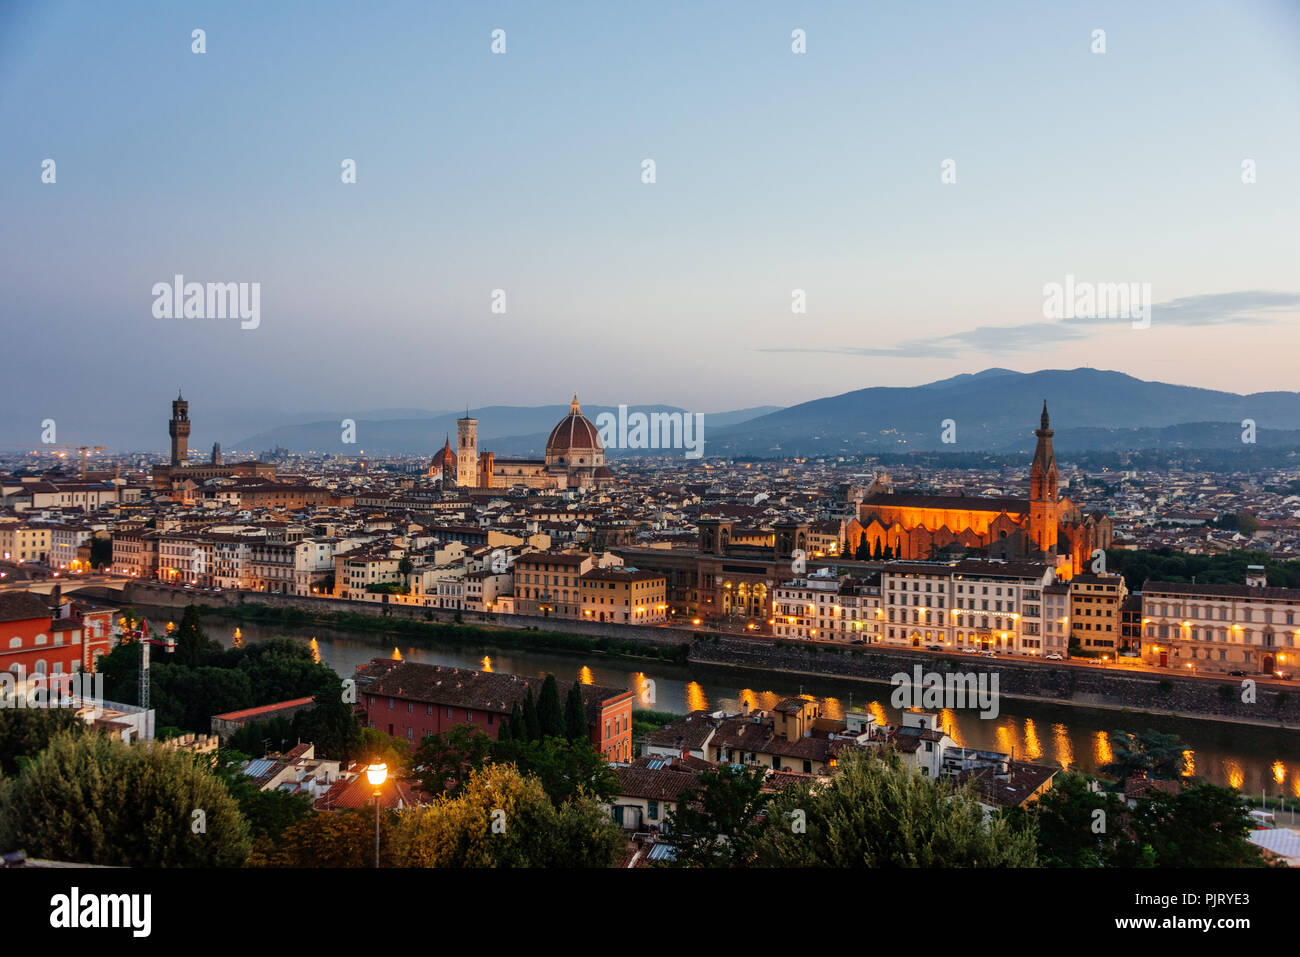 Pre-dawn Sunrise in Florence - Stock Image